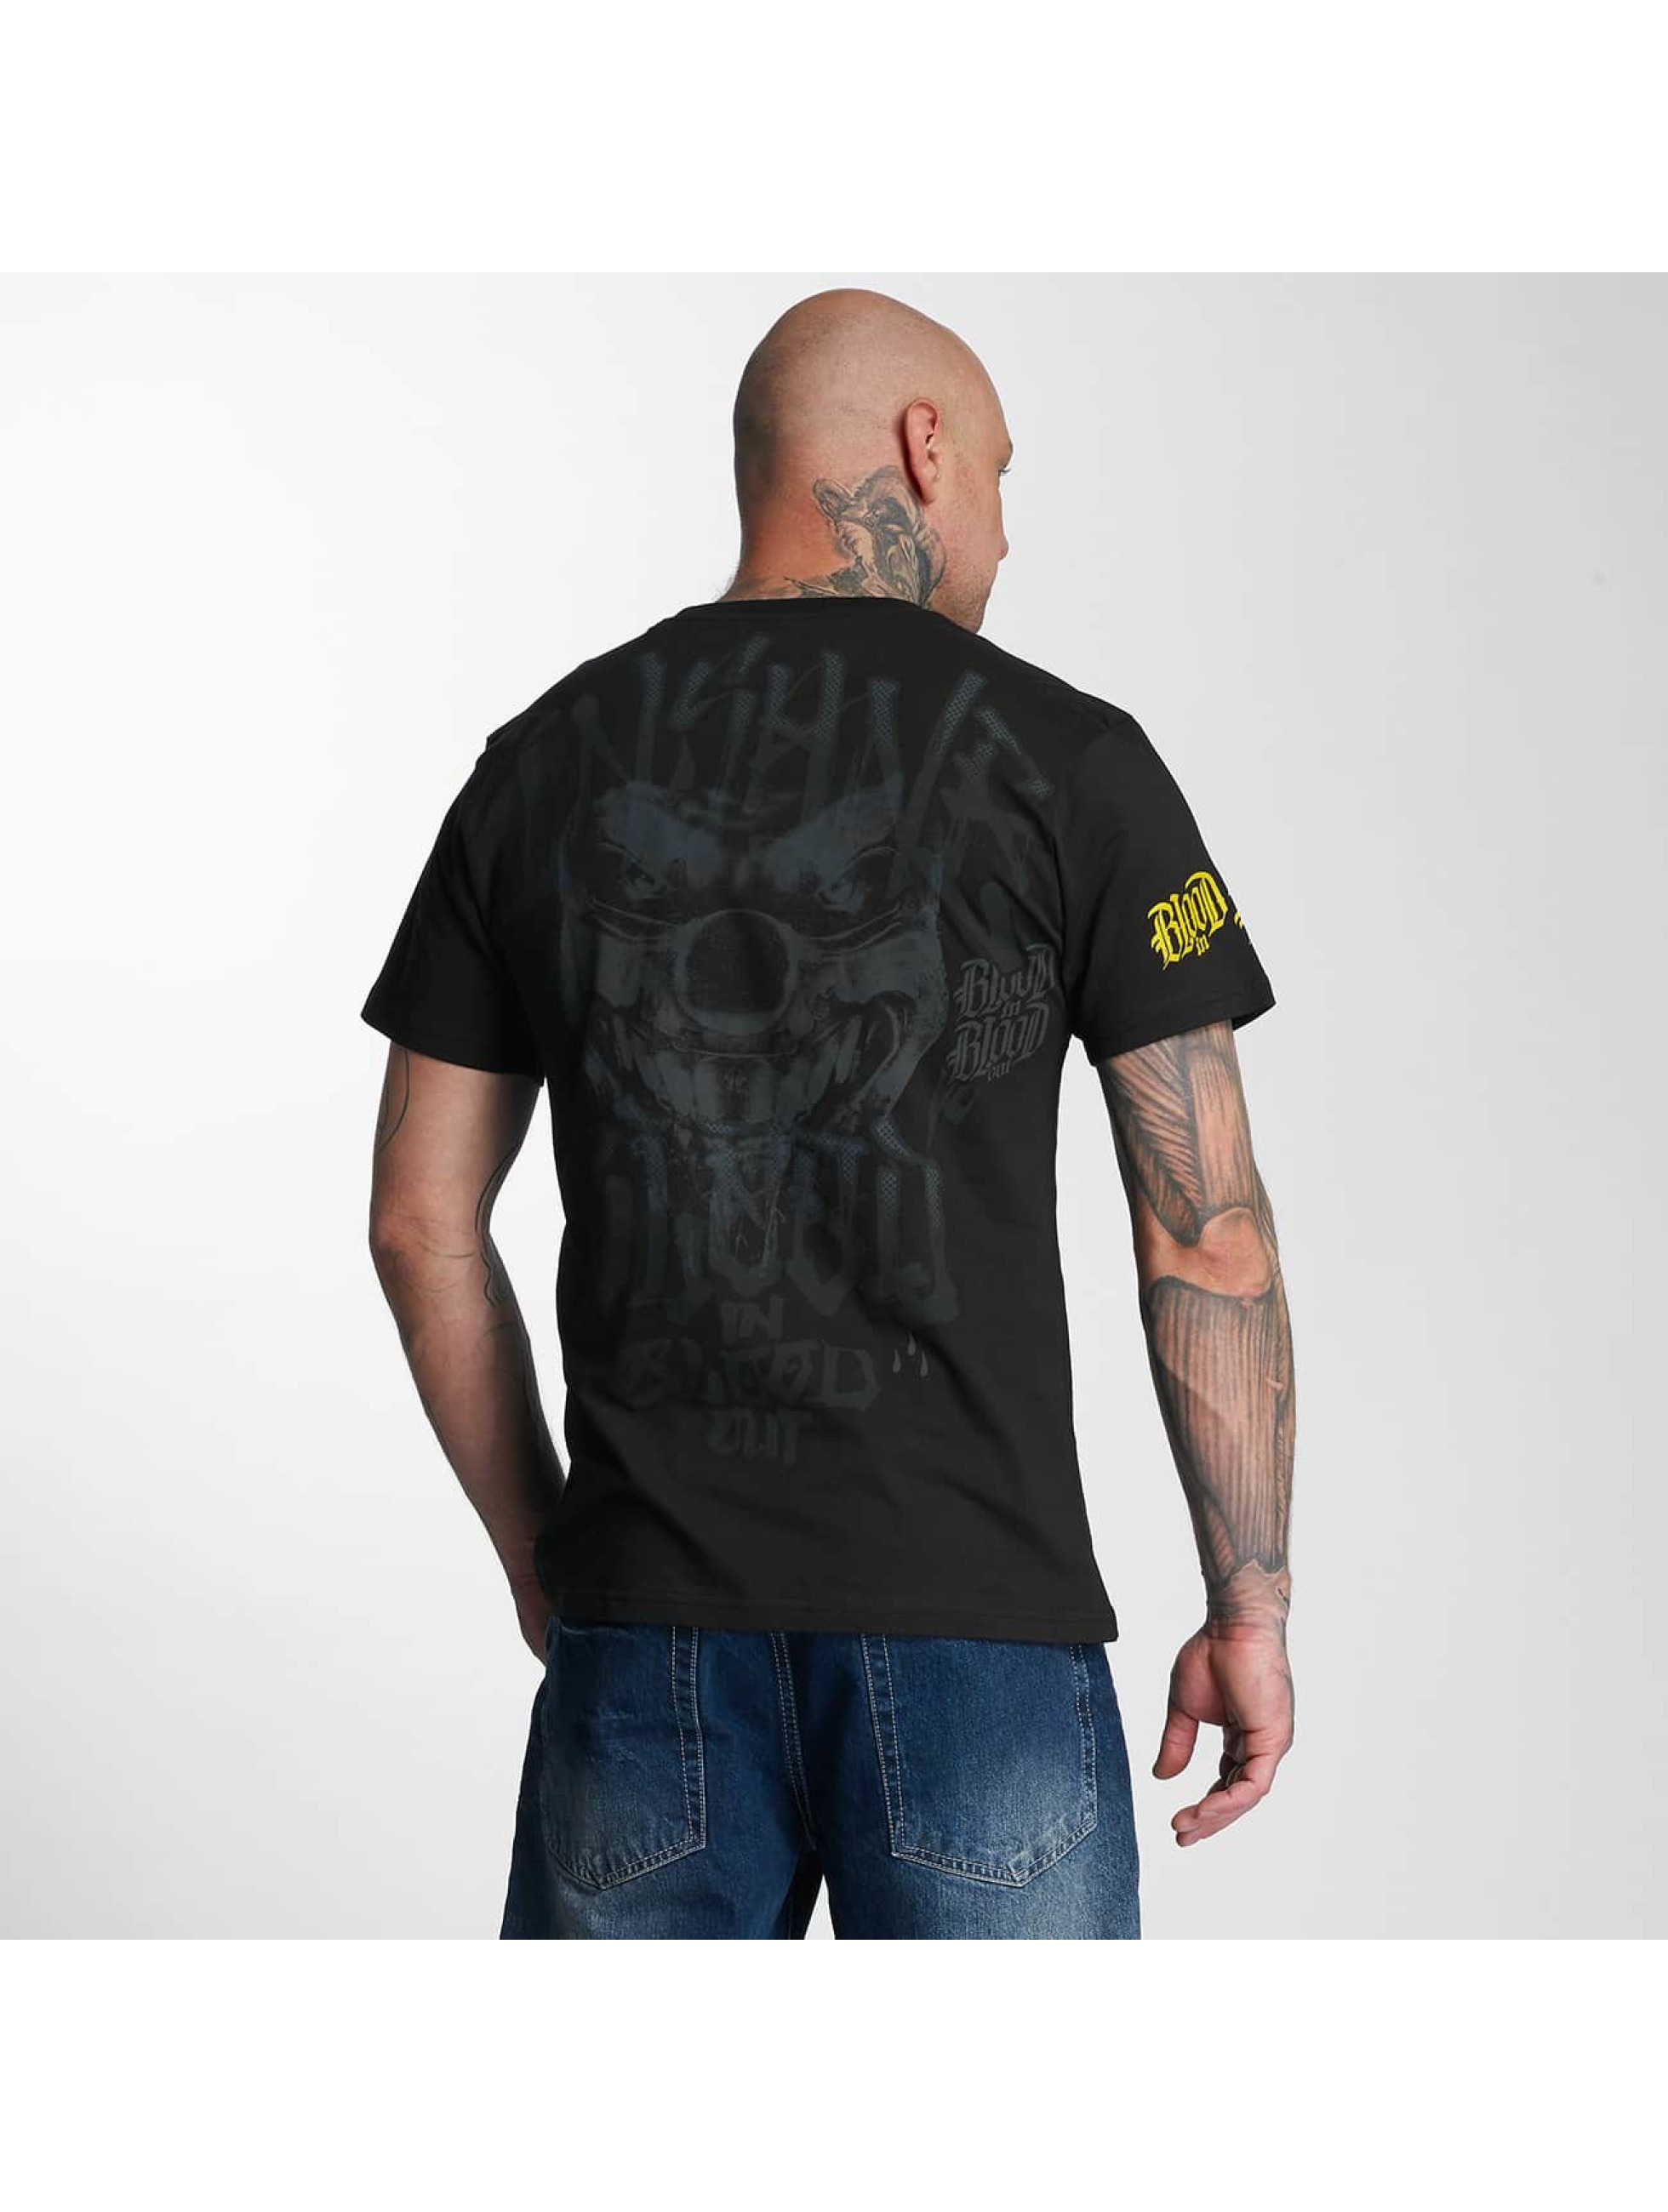 Blood In Blood Out T-Shirt Yellow Harlekin black